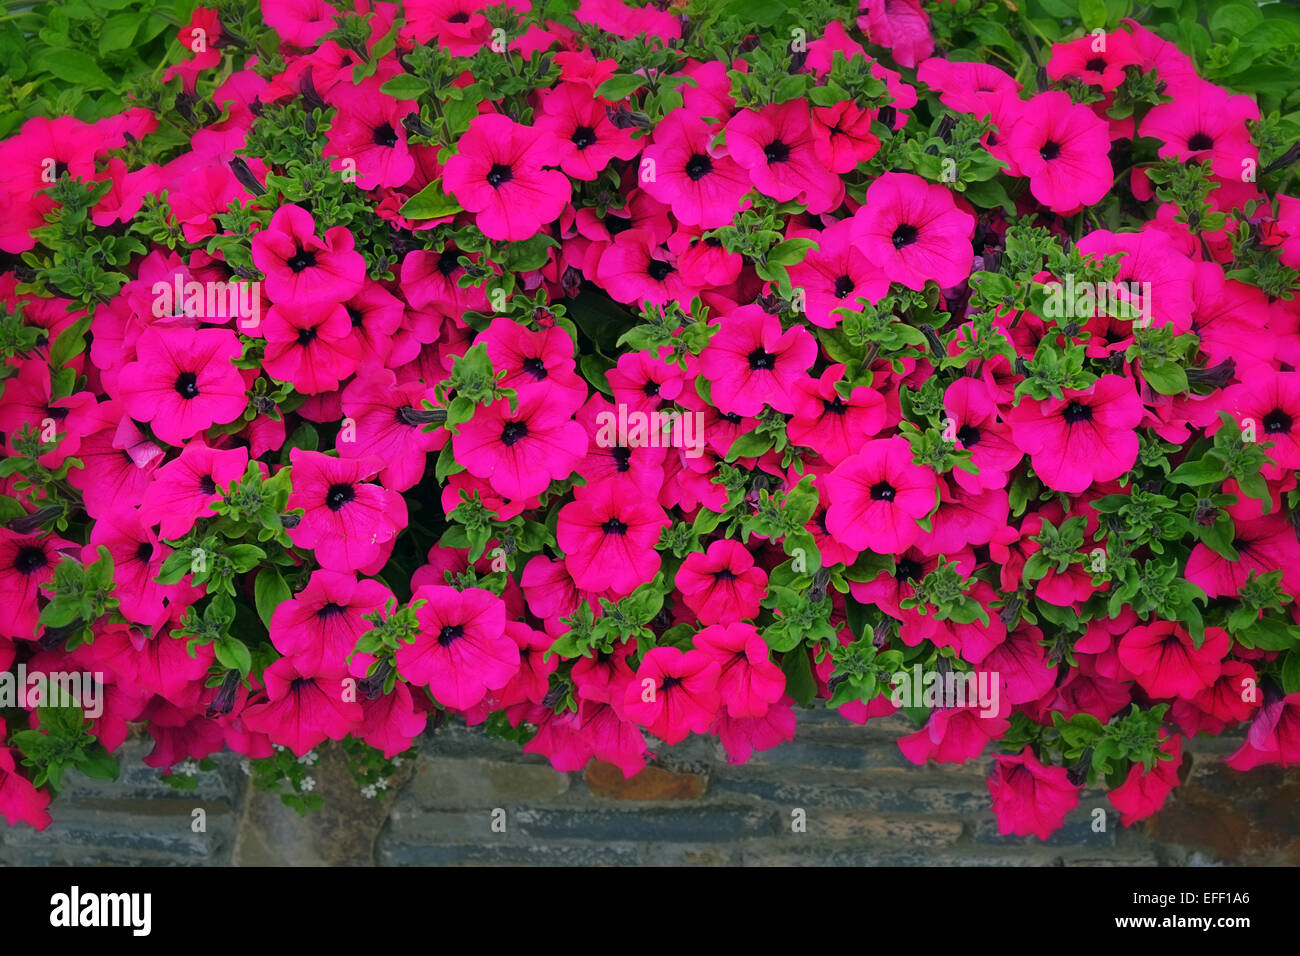 Petunia flower display outdoor window box Ireland Stock Photo